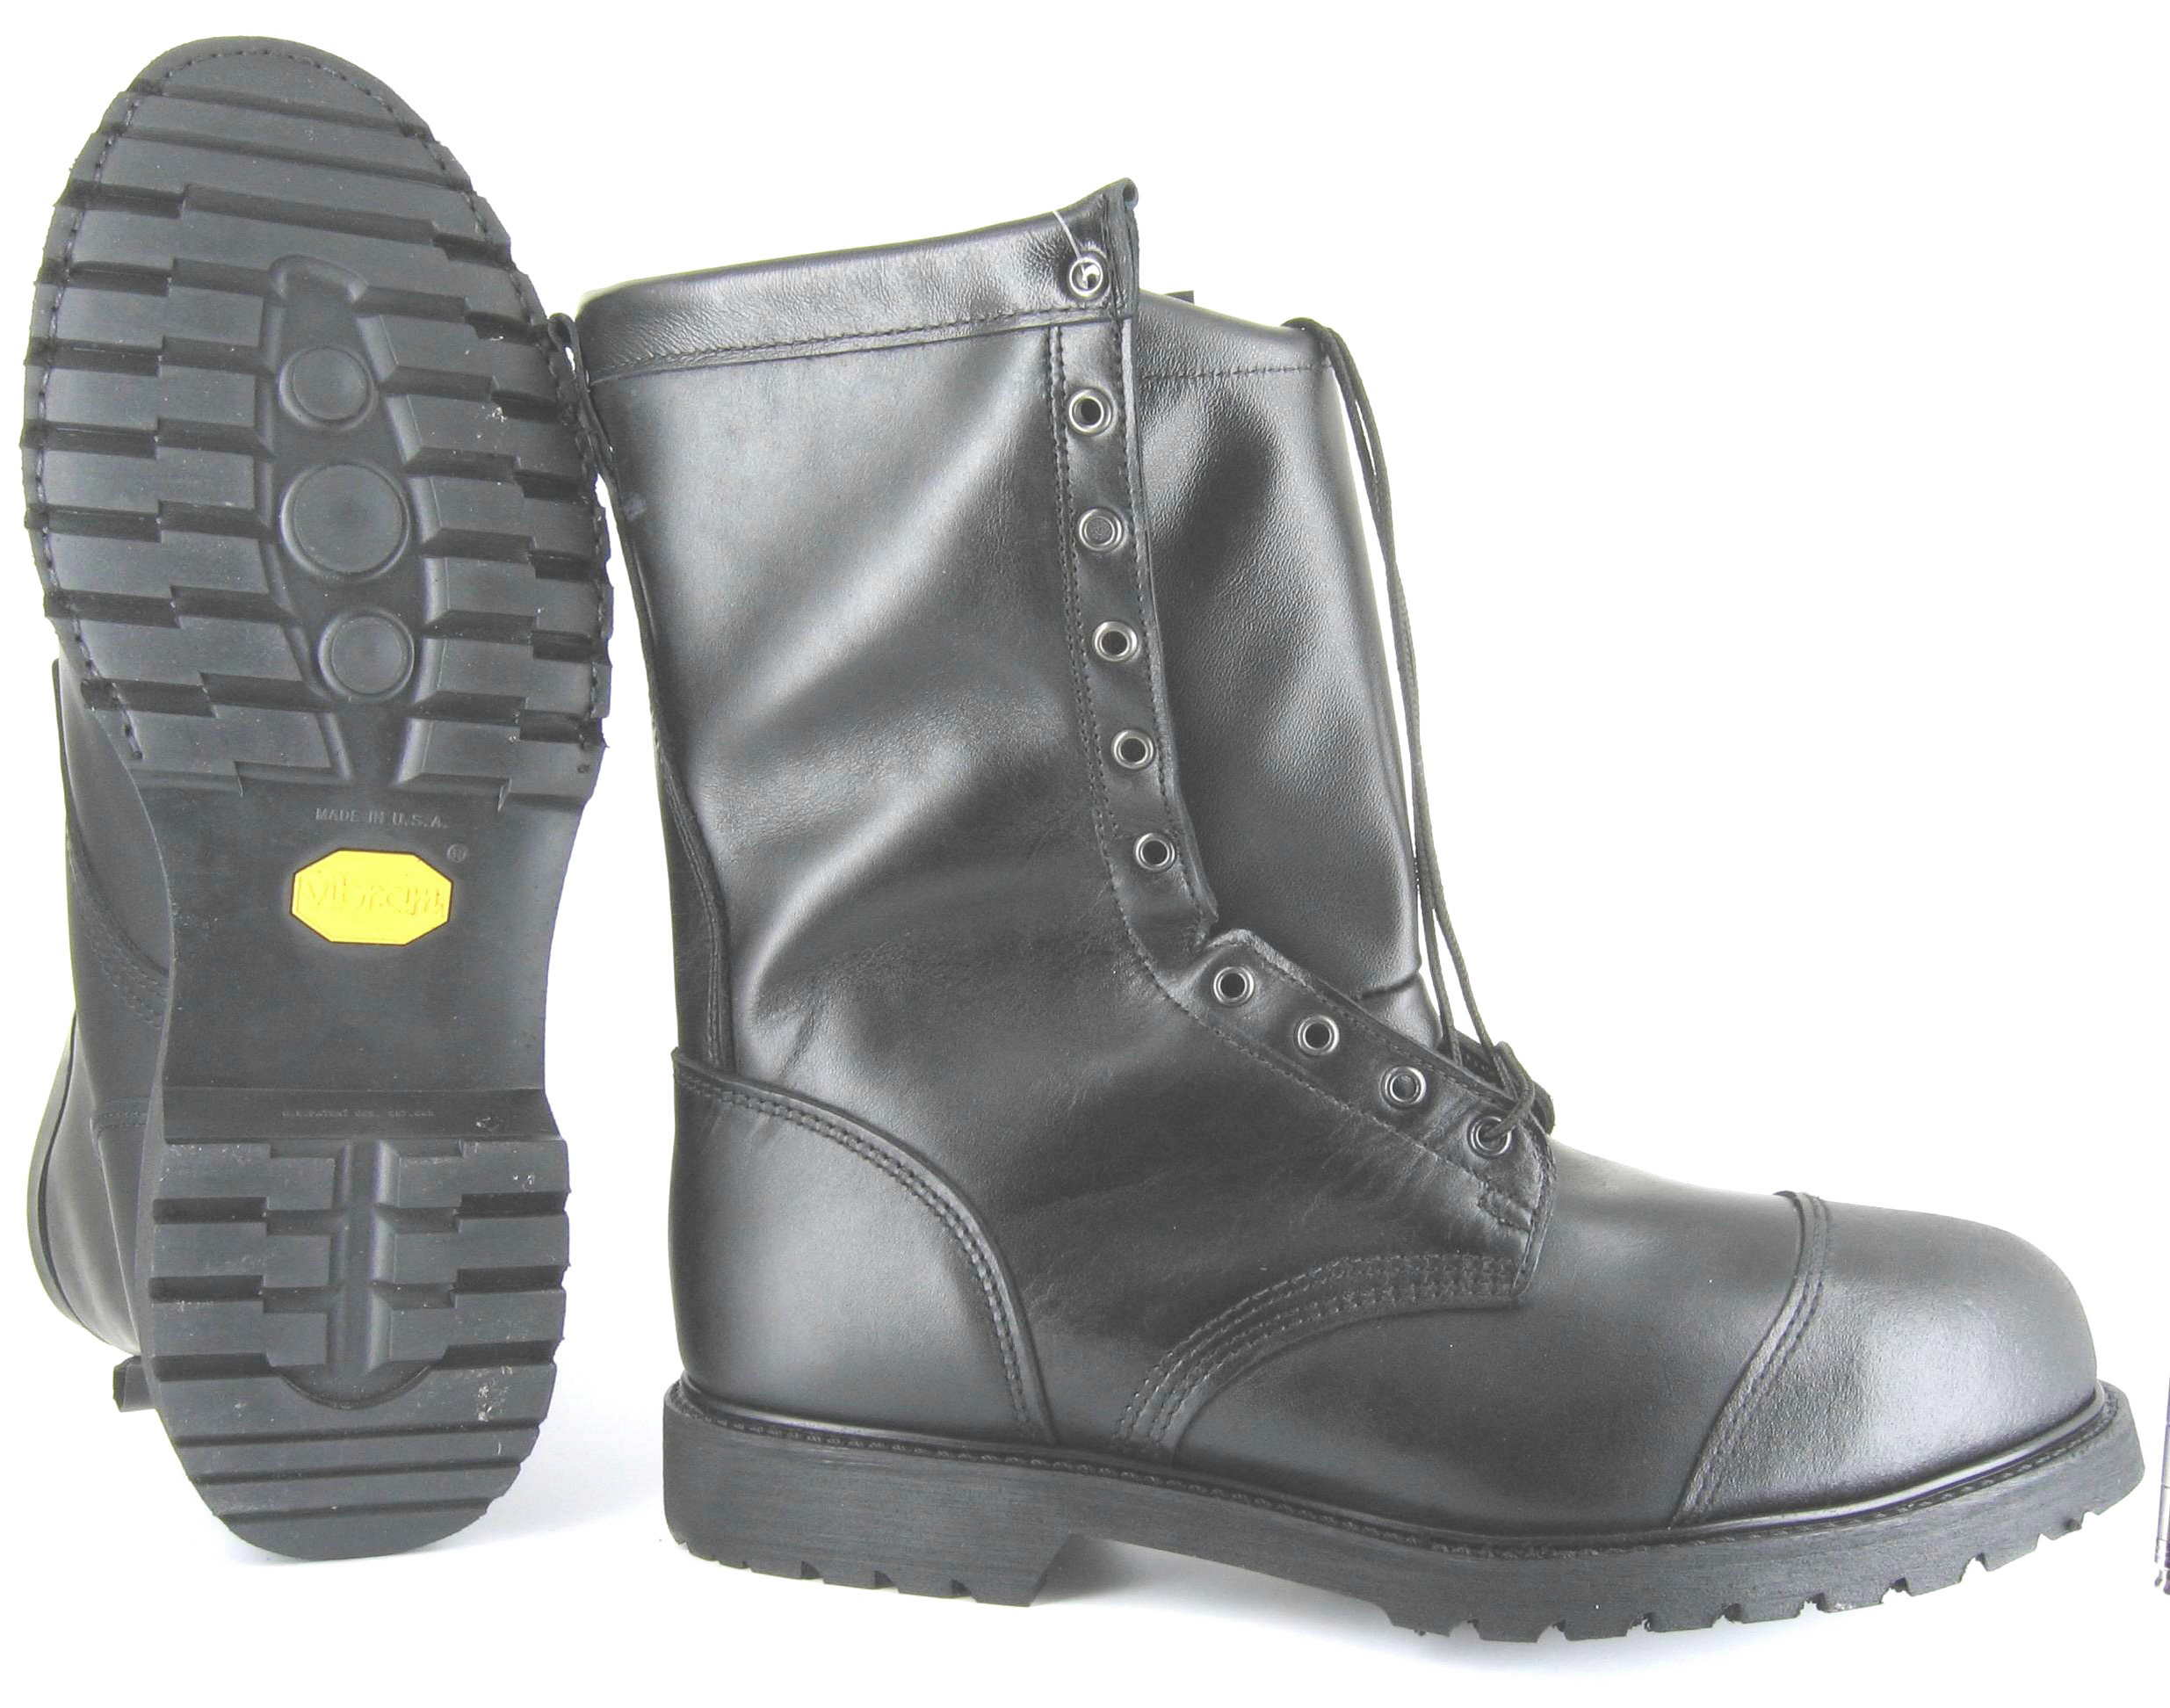 CREECH COAL MINING AND INDUSTRIAL METATARSAL BOOTS